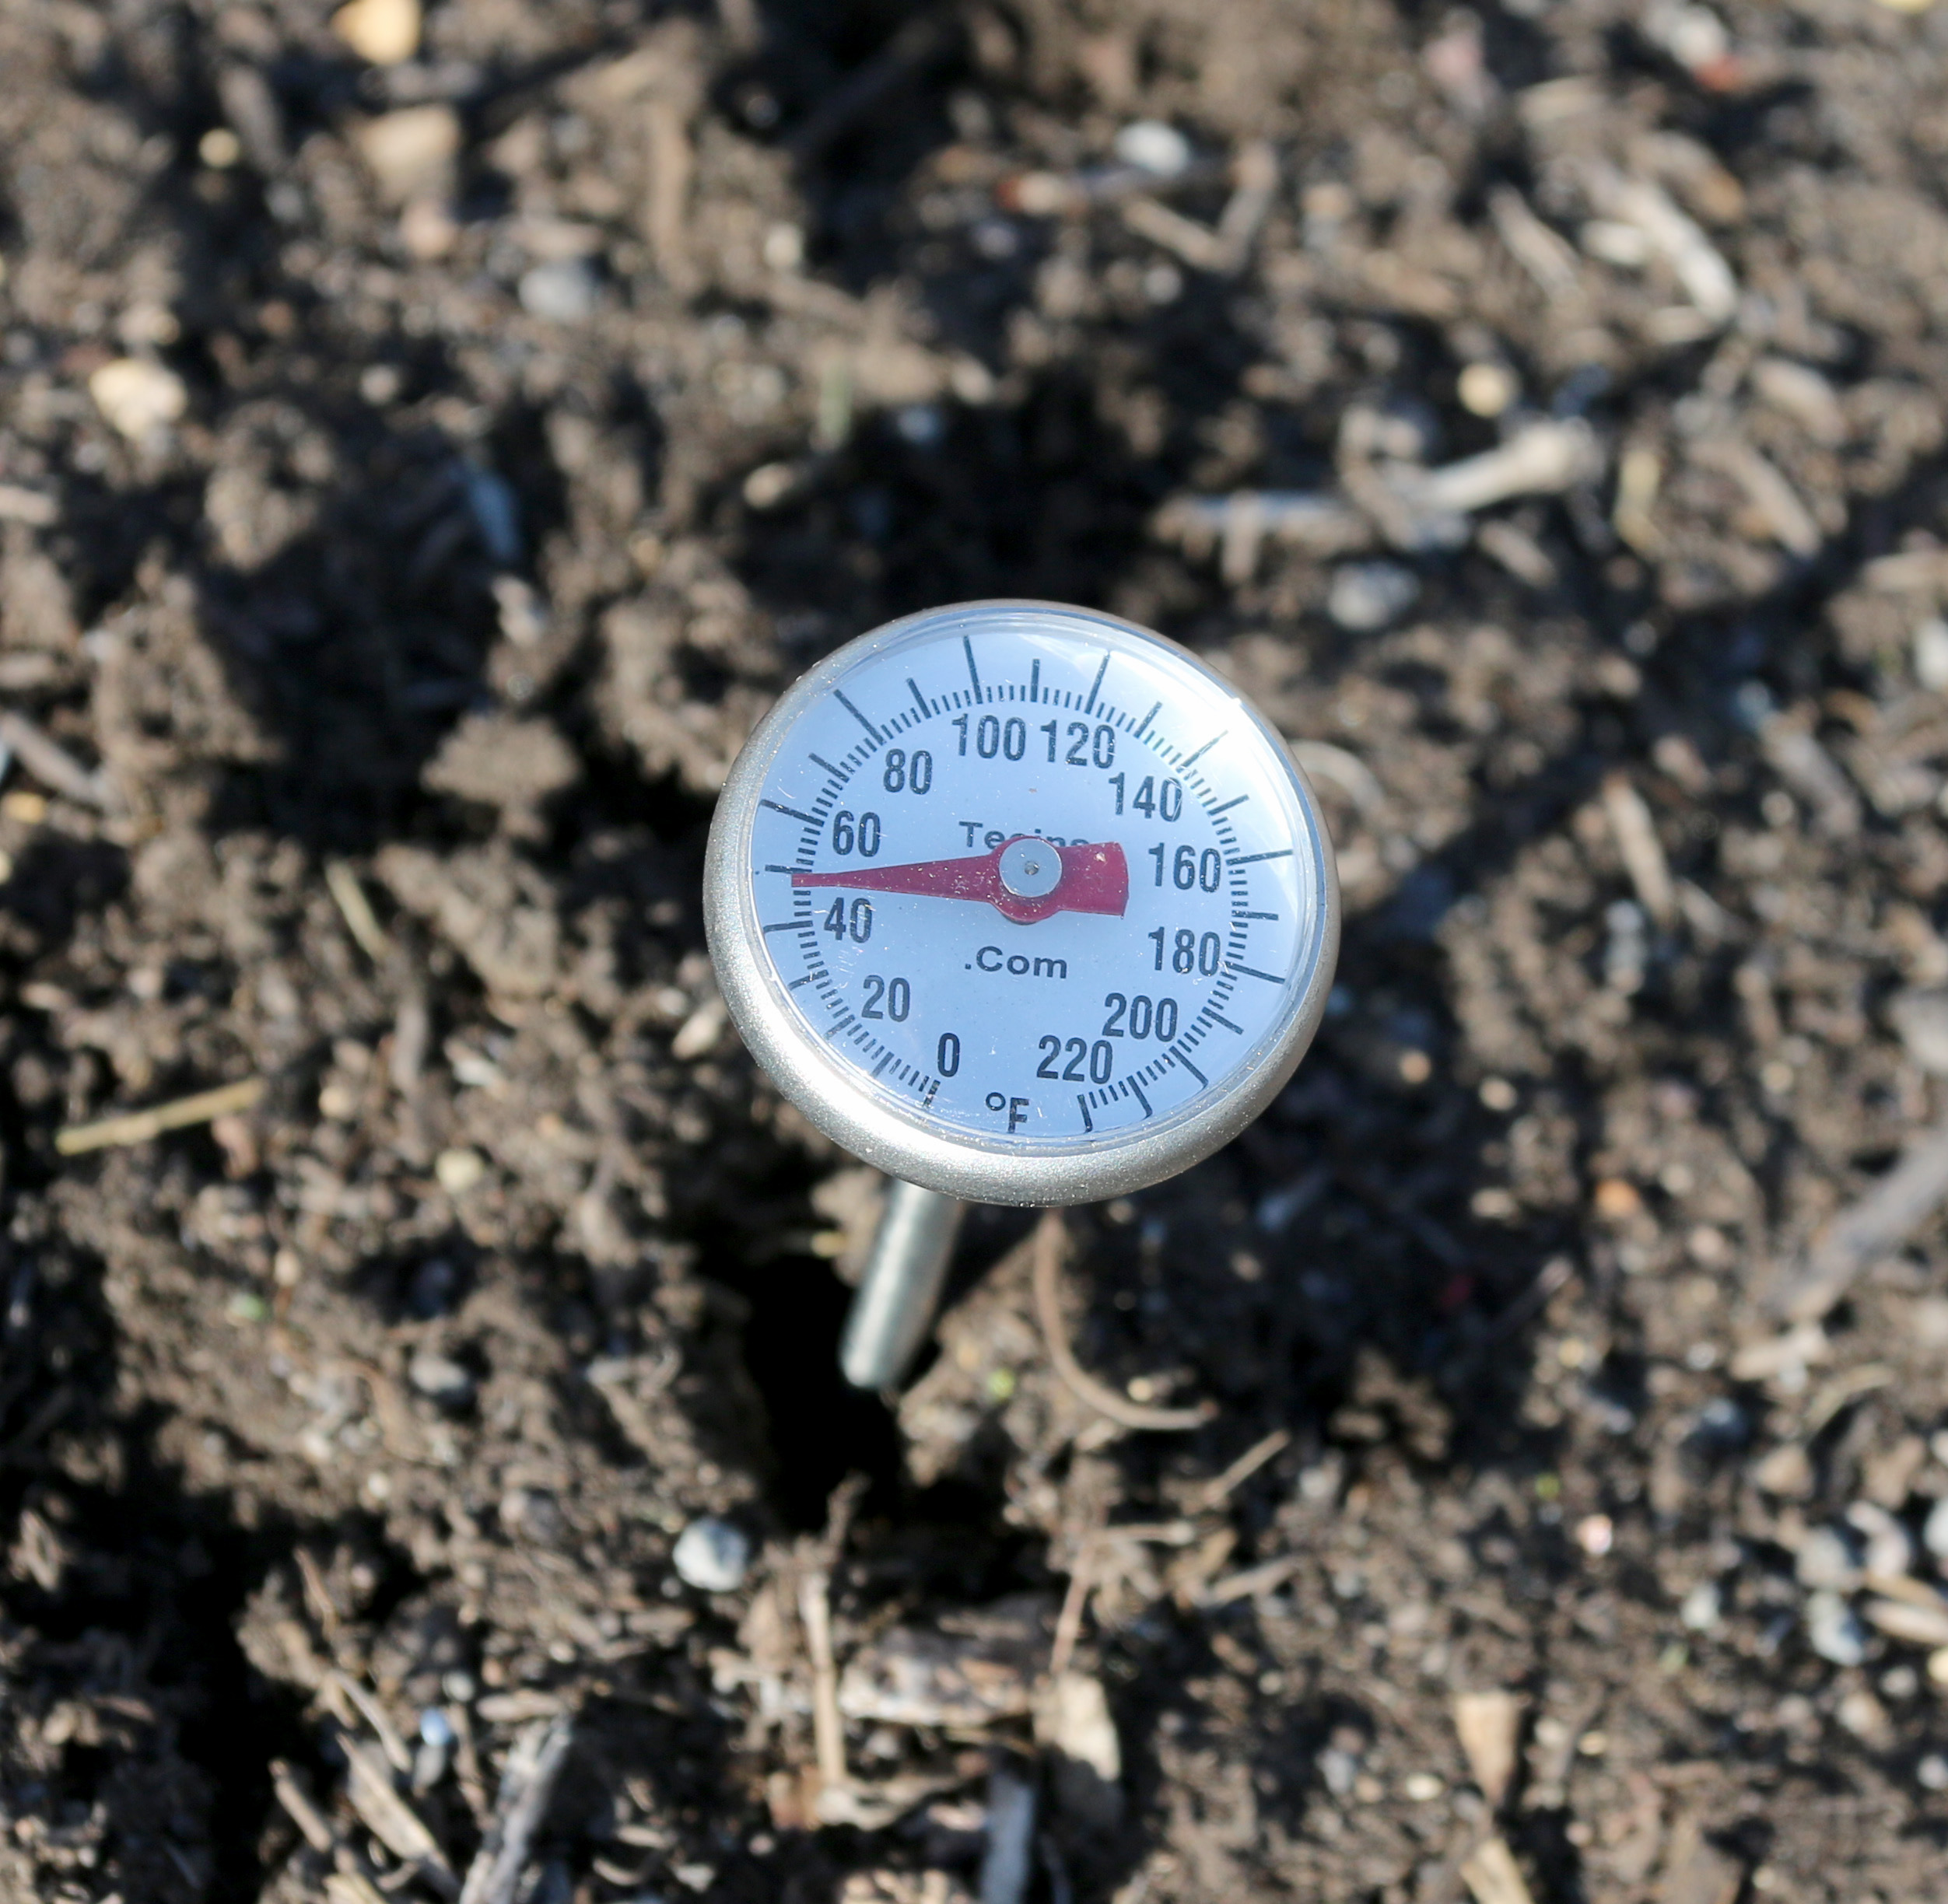 Soil thermometer.